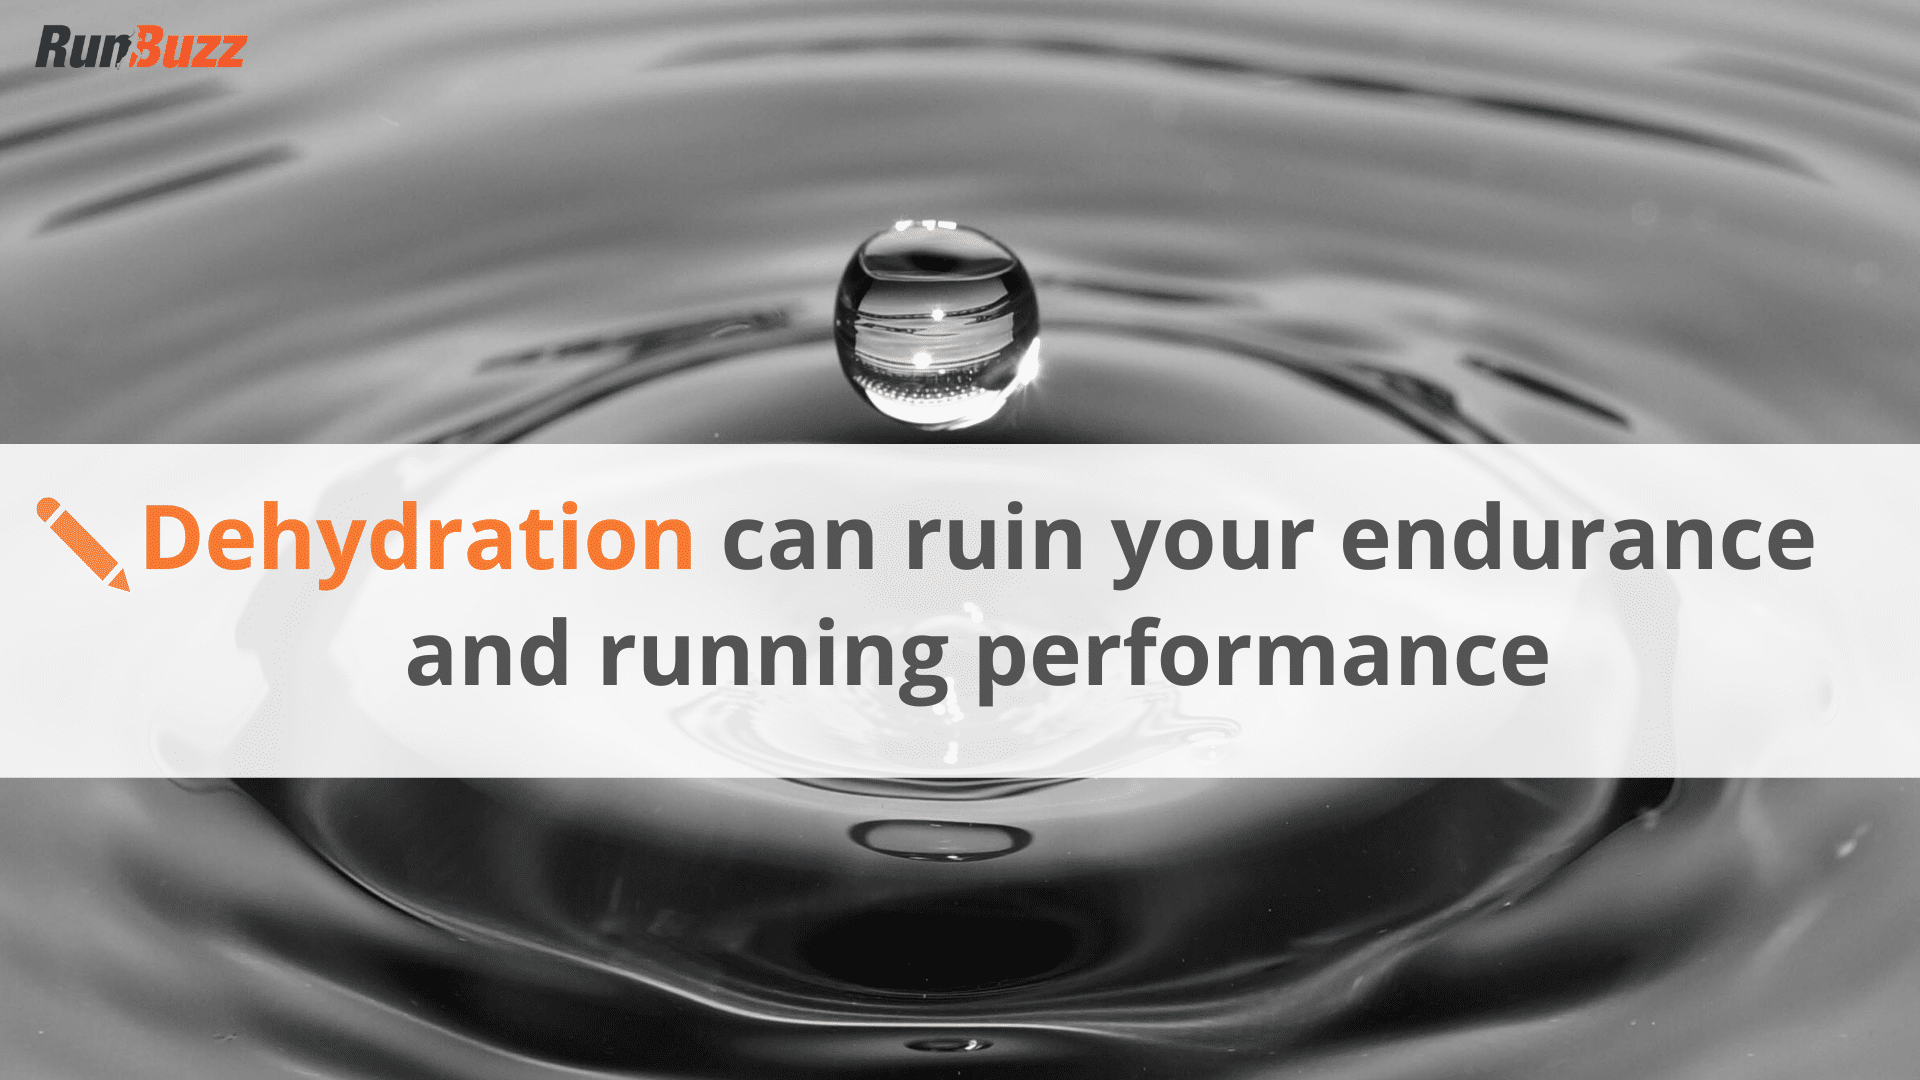 Dehydration-can-ruin-your-running-performance